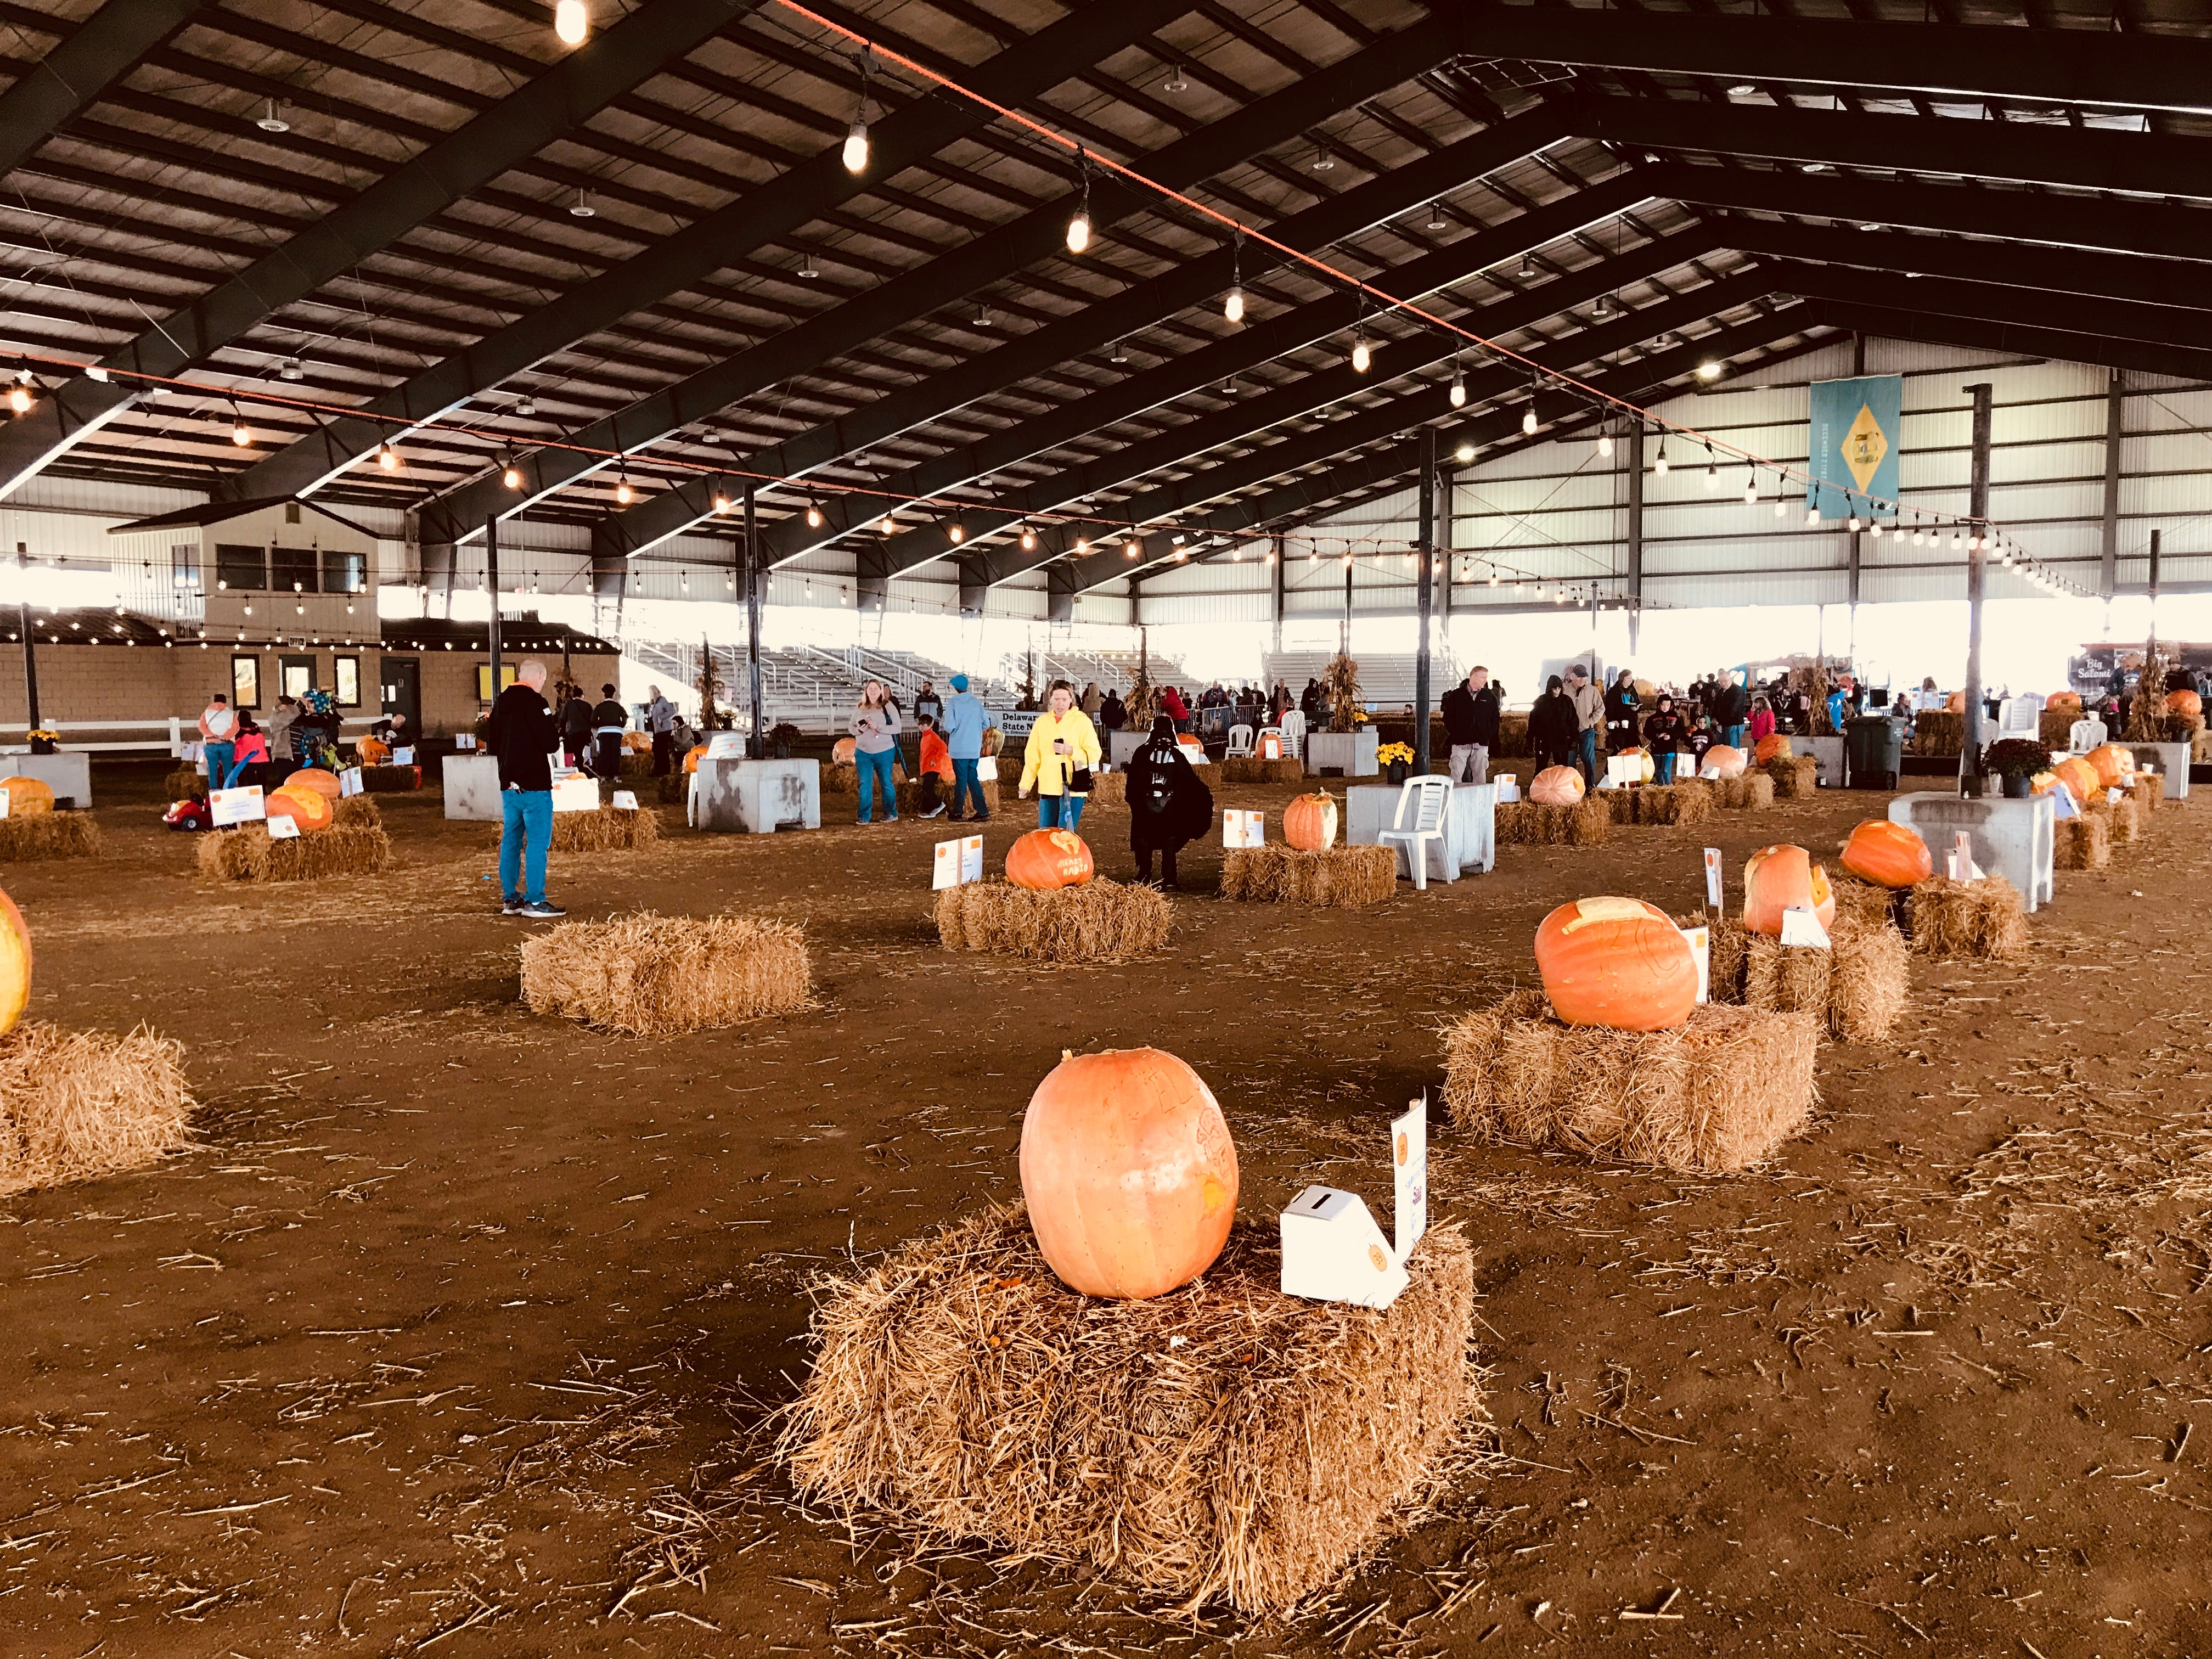 The Biggs Museum of American Art and the Delaware State Fair have agreed to sponsor the Great Delaware Pumpkin Carve for a few years with hopes of making it an annual event at the fairgrounds, where it has room to grow. The festival includes all kinds of kids activities and costume contests on Saturday.